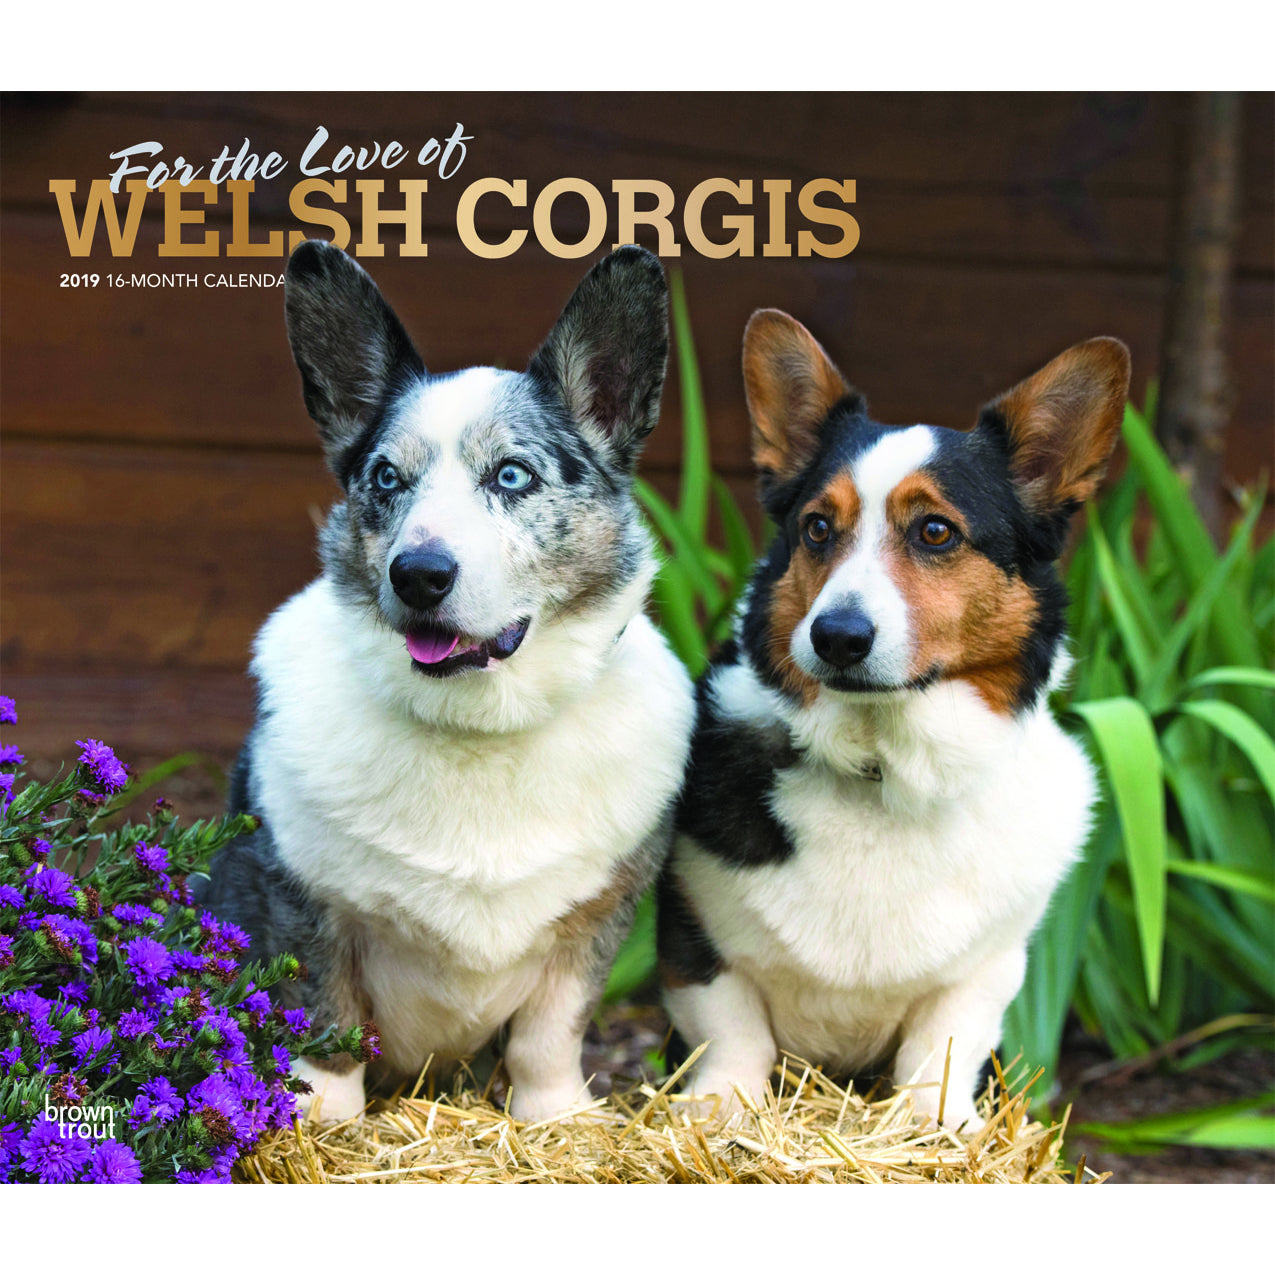 For The Love Of Pembroke Welsh Corgis 2019 Deluxe Wall Calendar